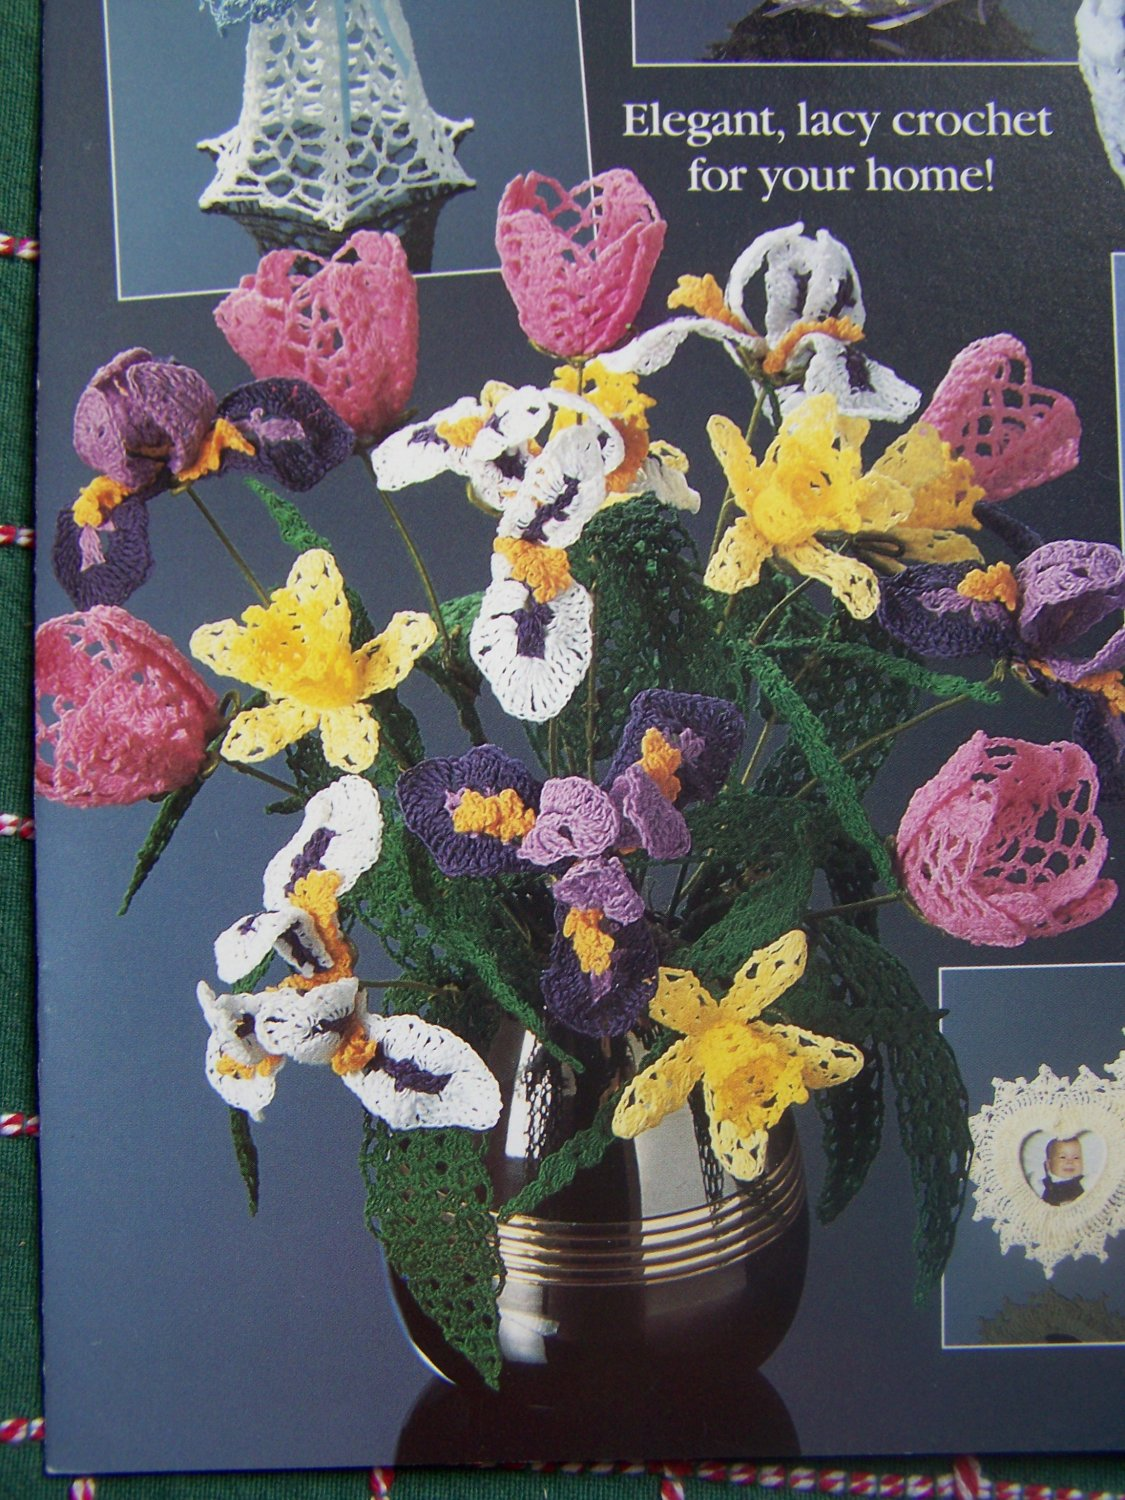 Vintage Crochet Patterns Long Stem Tulips Iris Daffodil Pineapple Bell Free USA S&H